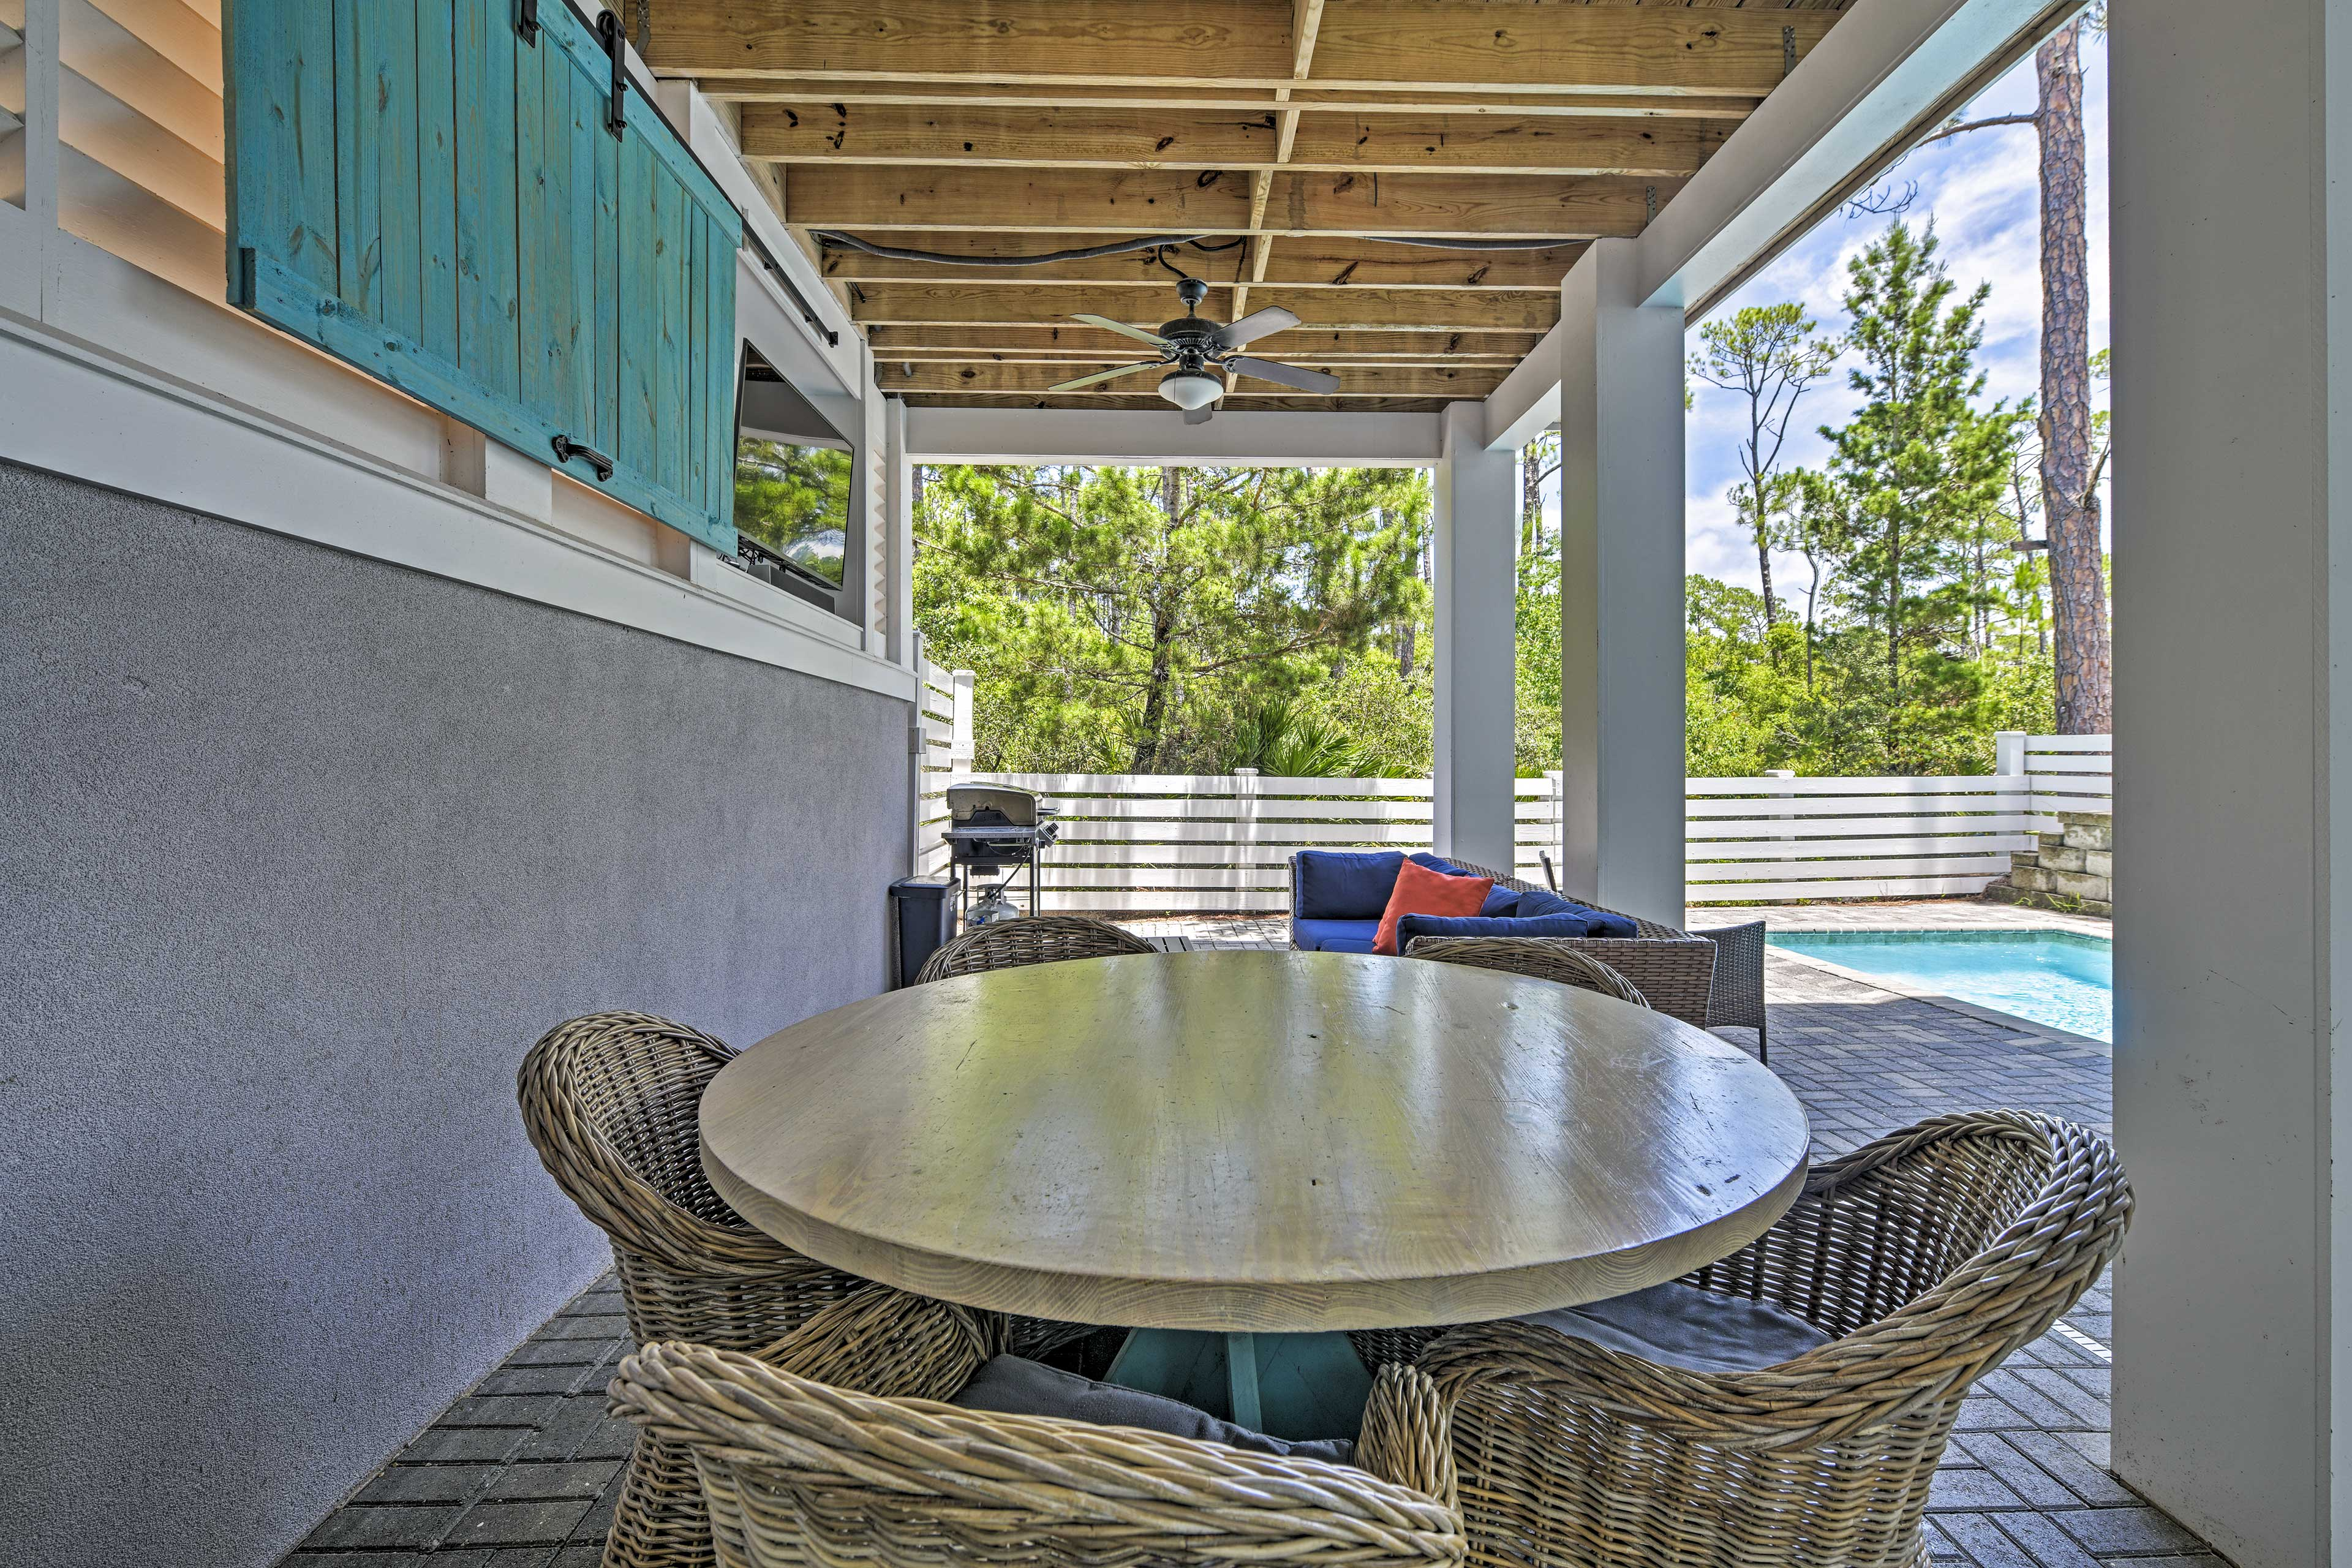 Stream a movie from the covered patio, or share a meal with friends.